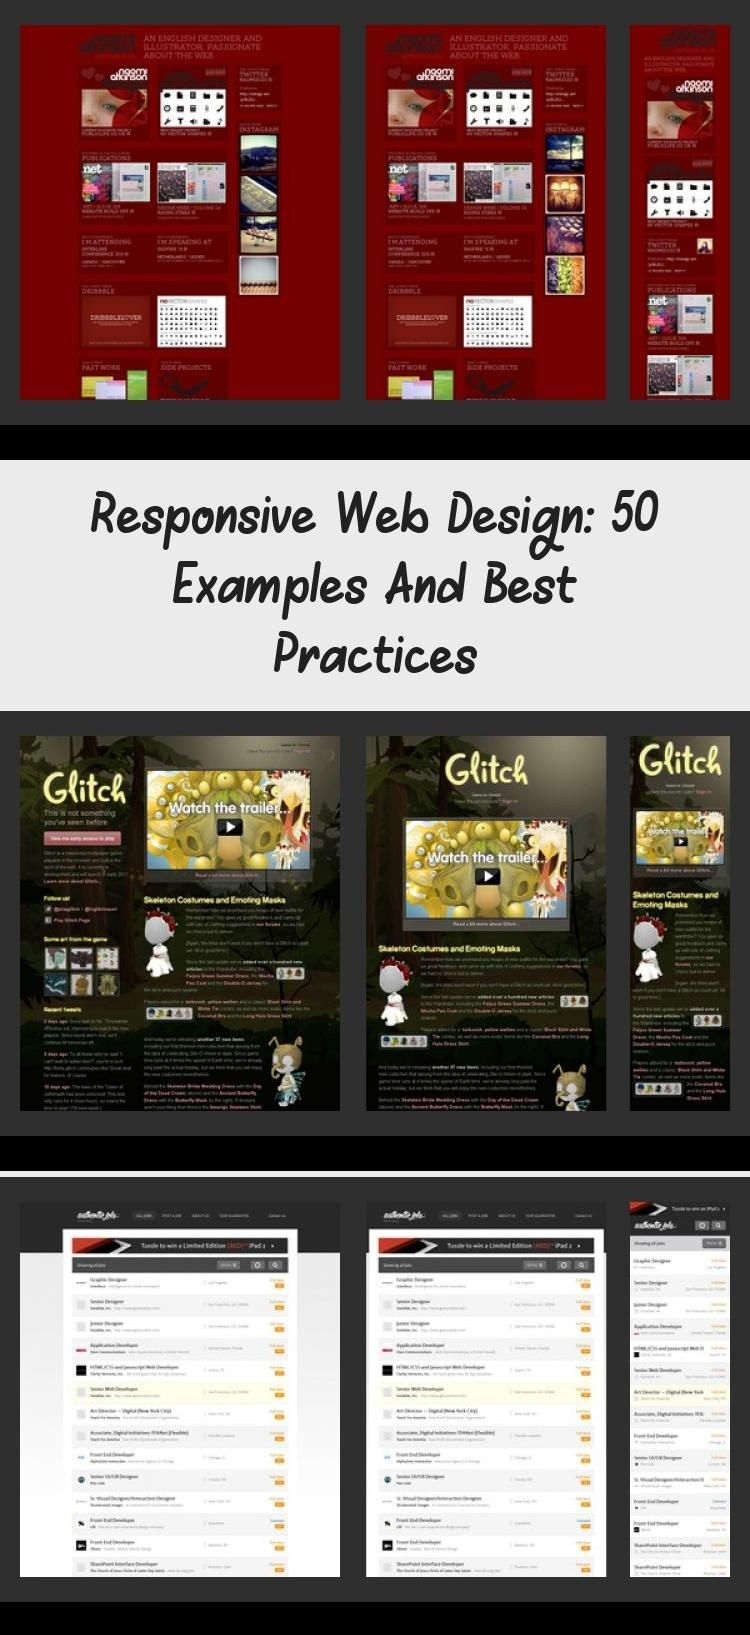 Responsive Web Design 50 Examples And Best Practices In 2020 Web Design Portfolio Web Design Responsive Design Examples